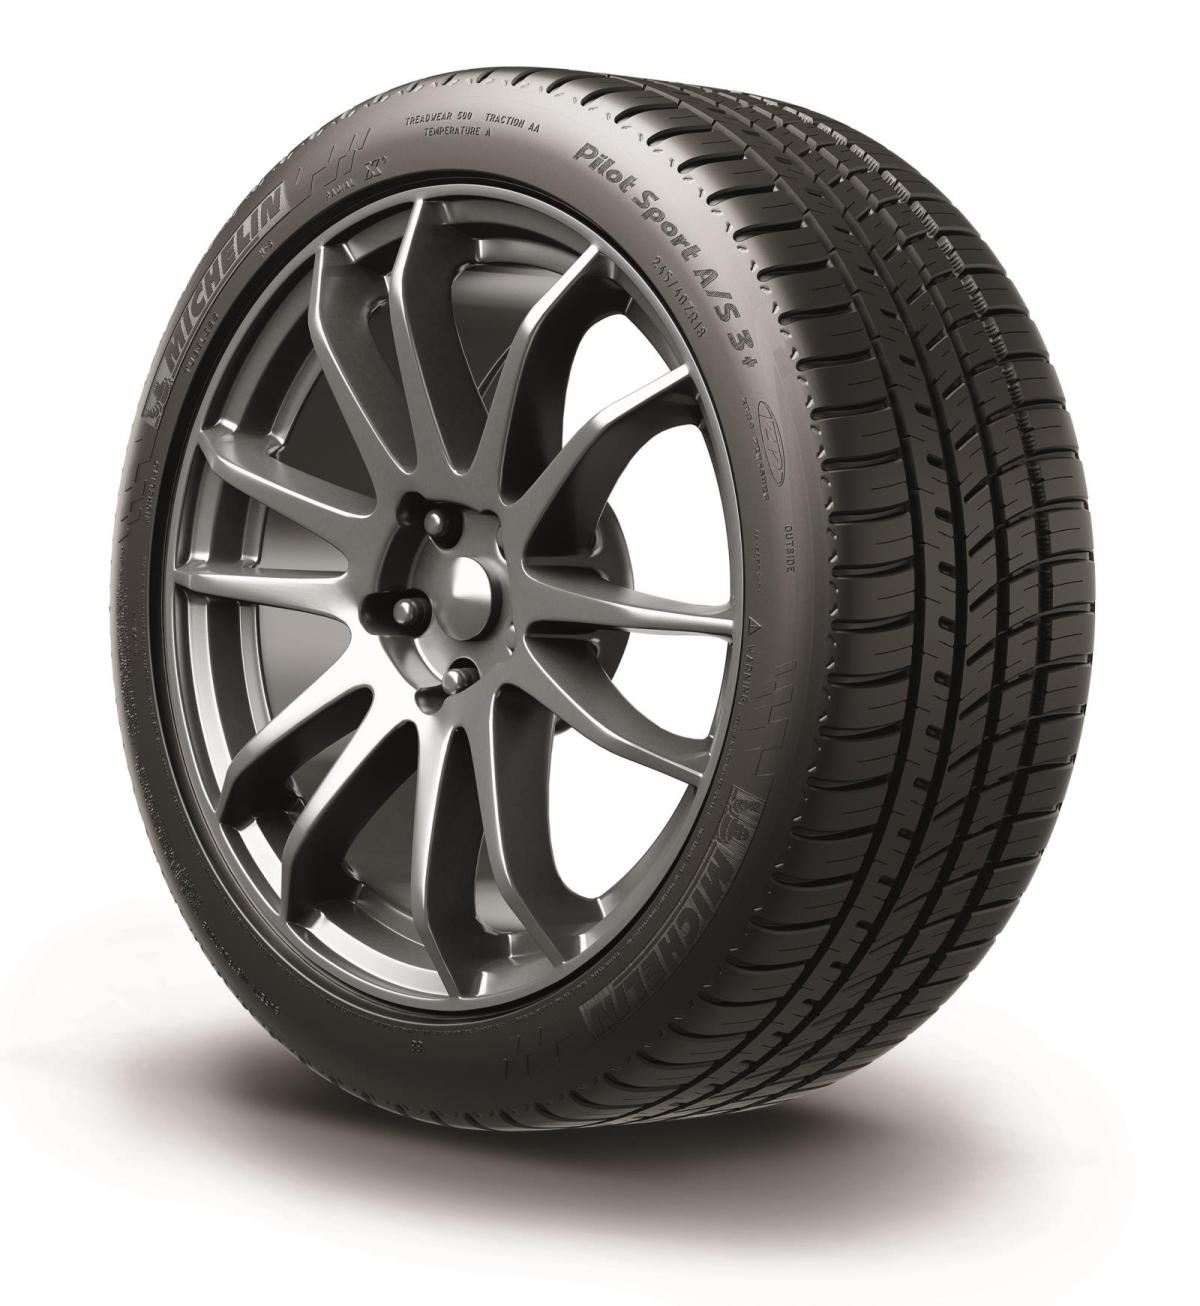 Michelin Pilot Sport AS 3+ angle